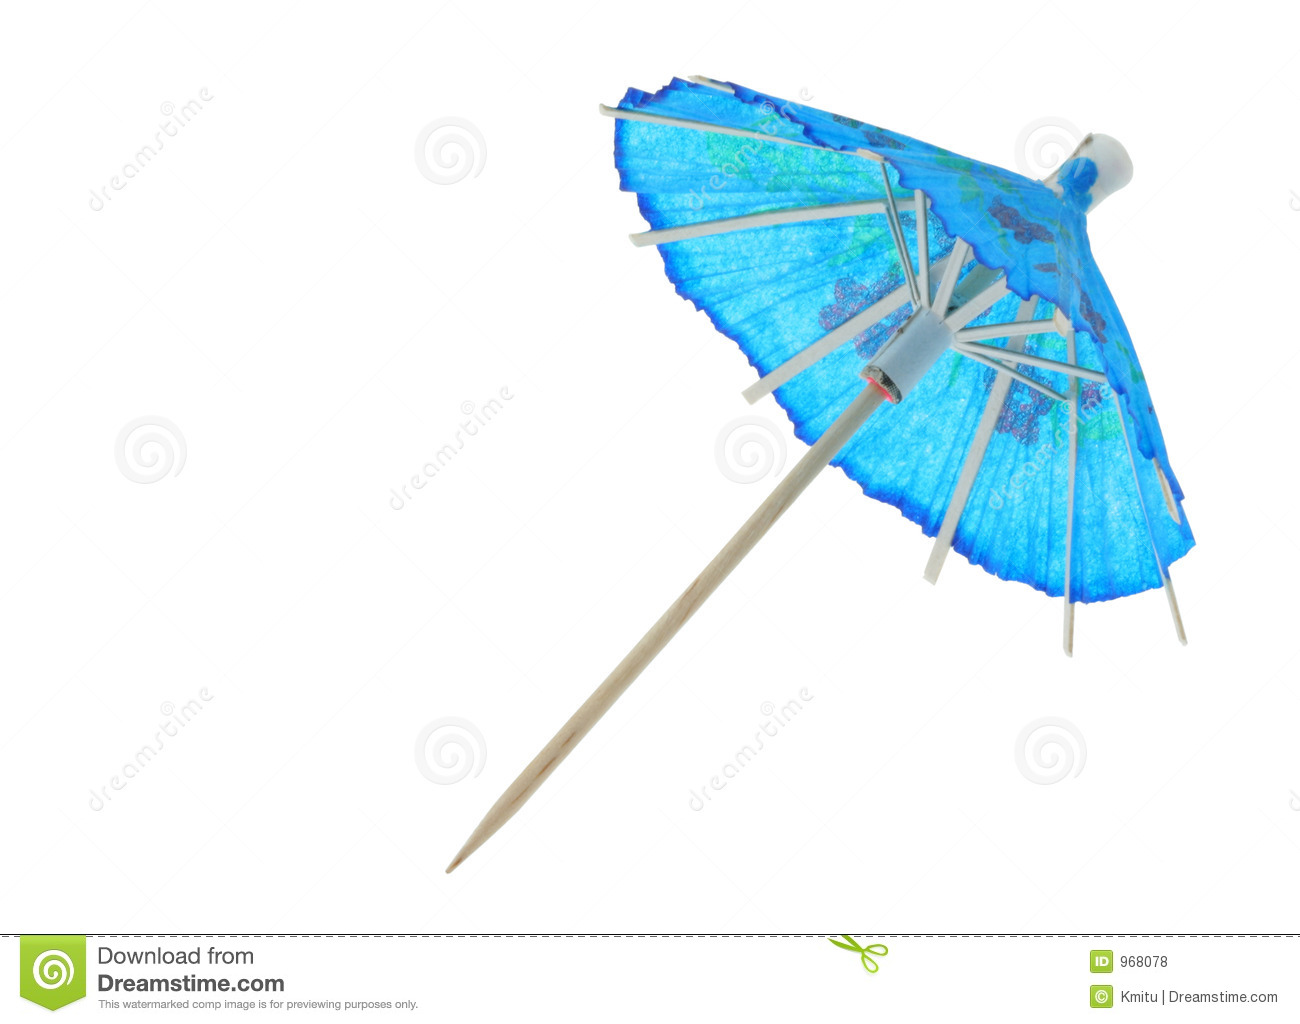 Asian Cocktail Umbrella Royalty Free Stock Photos - Image: 968078